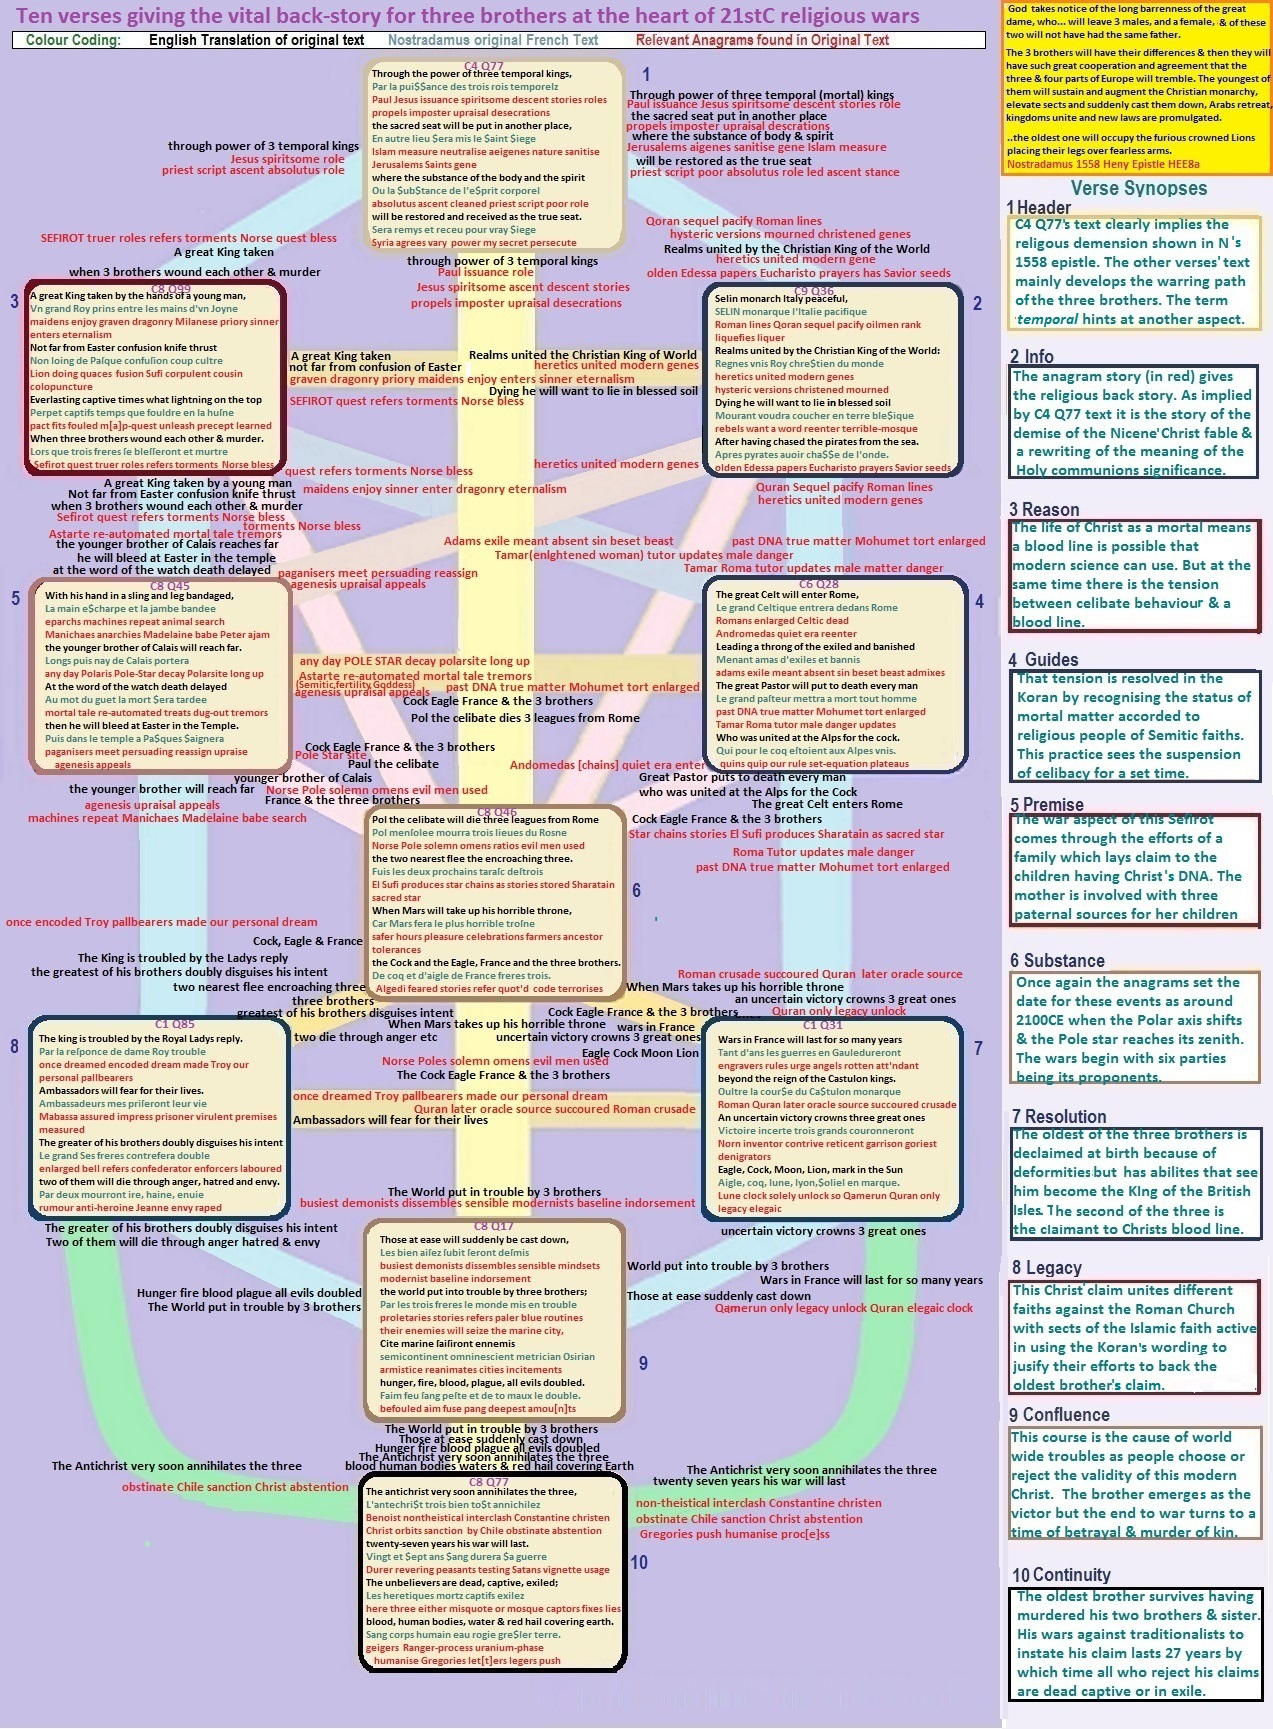 Chart of Nostradamus' verses covering 3 brothers 22ndC wars